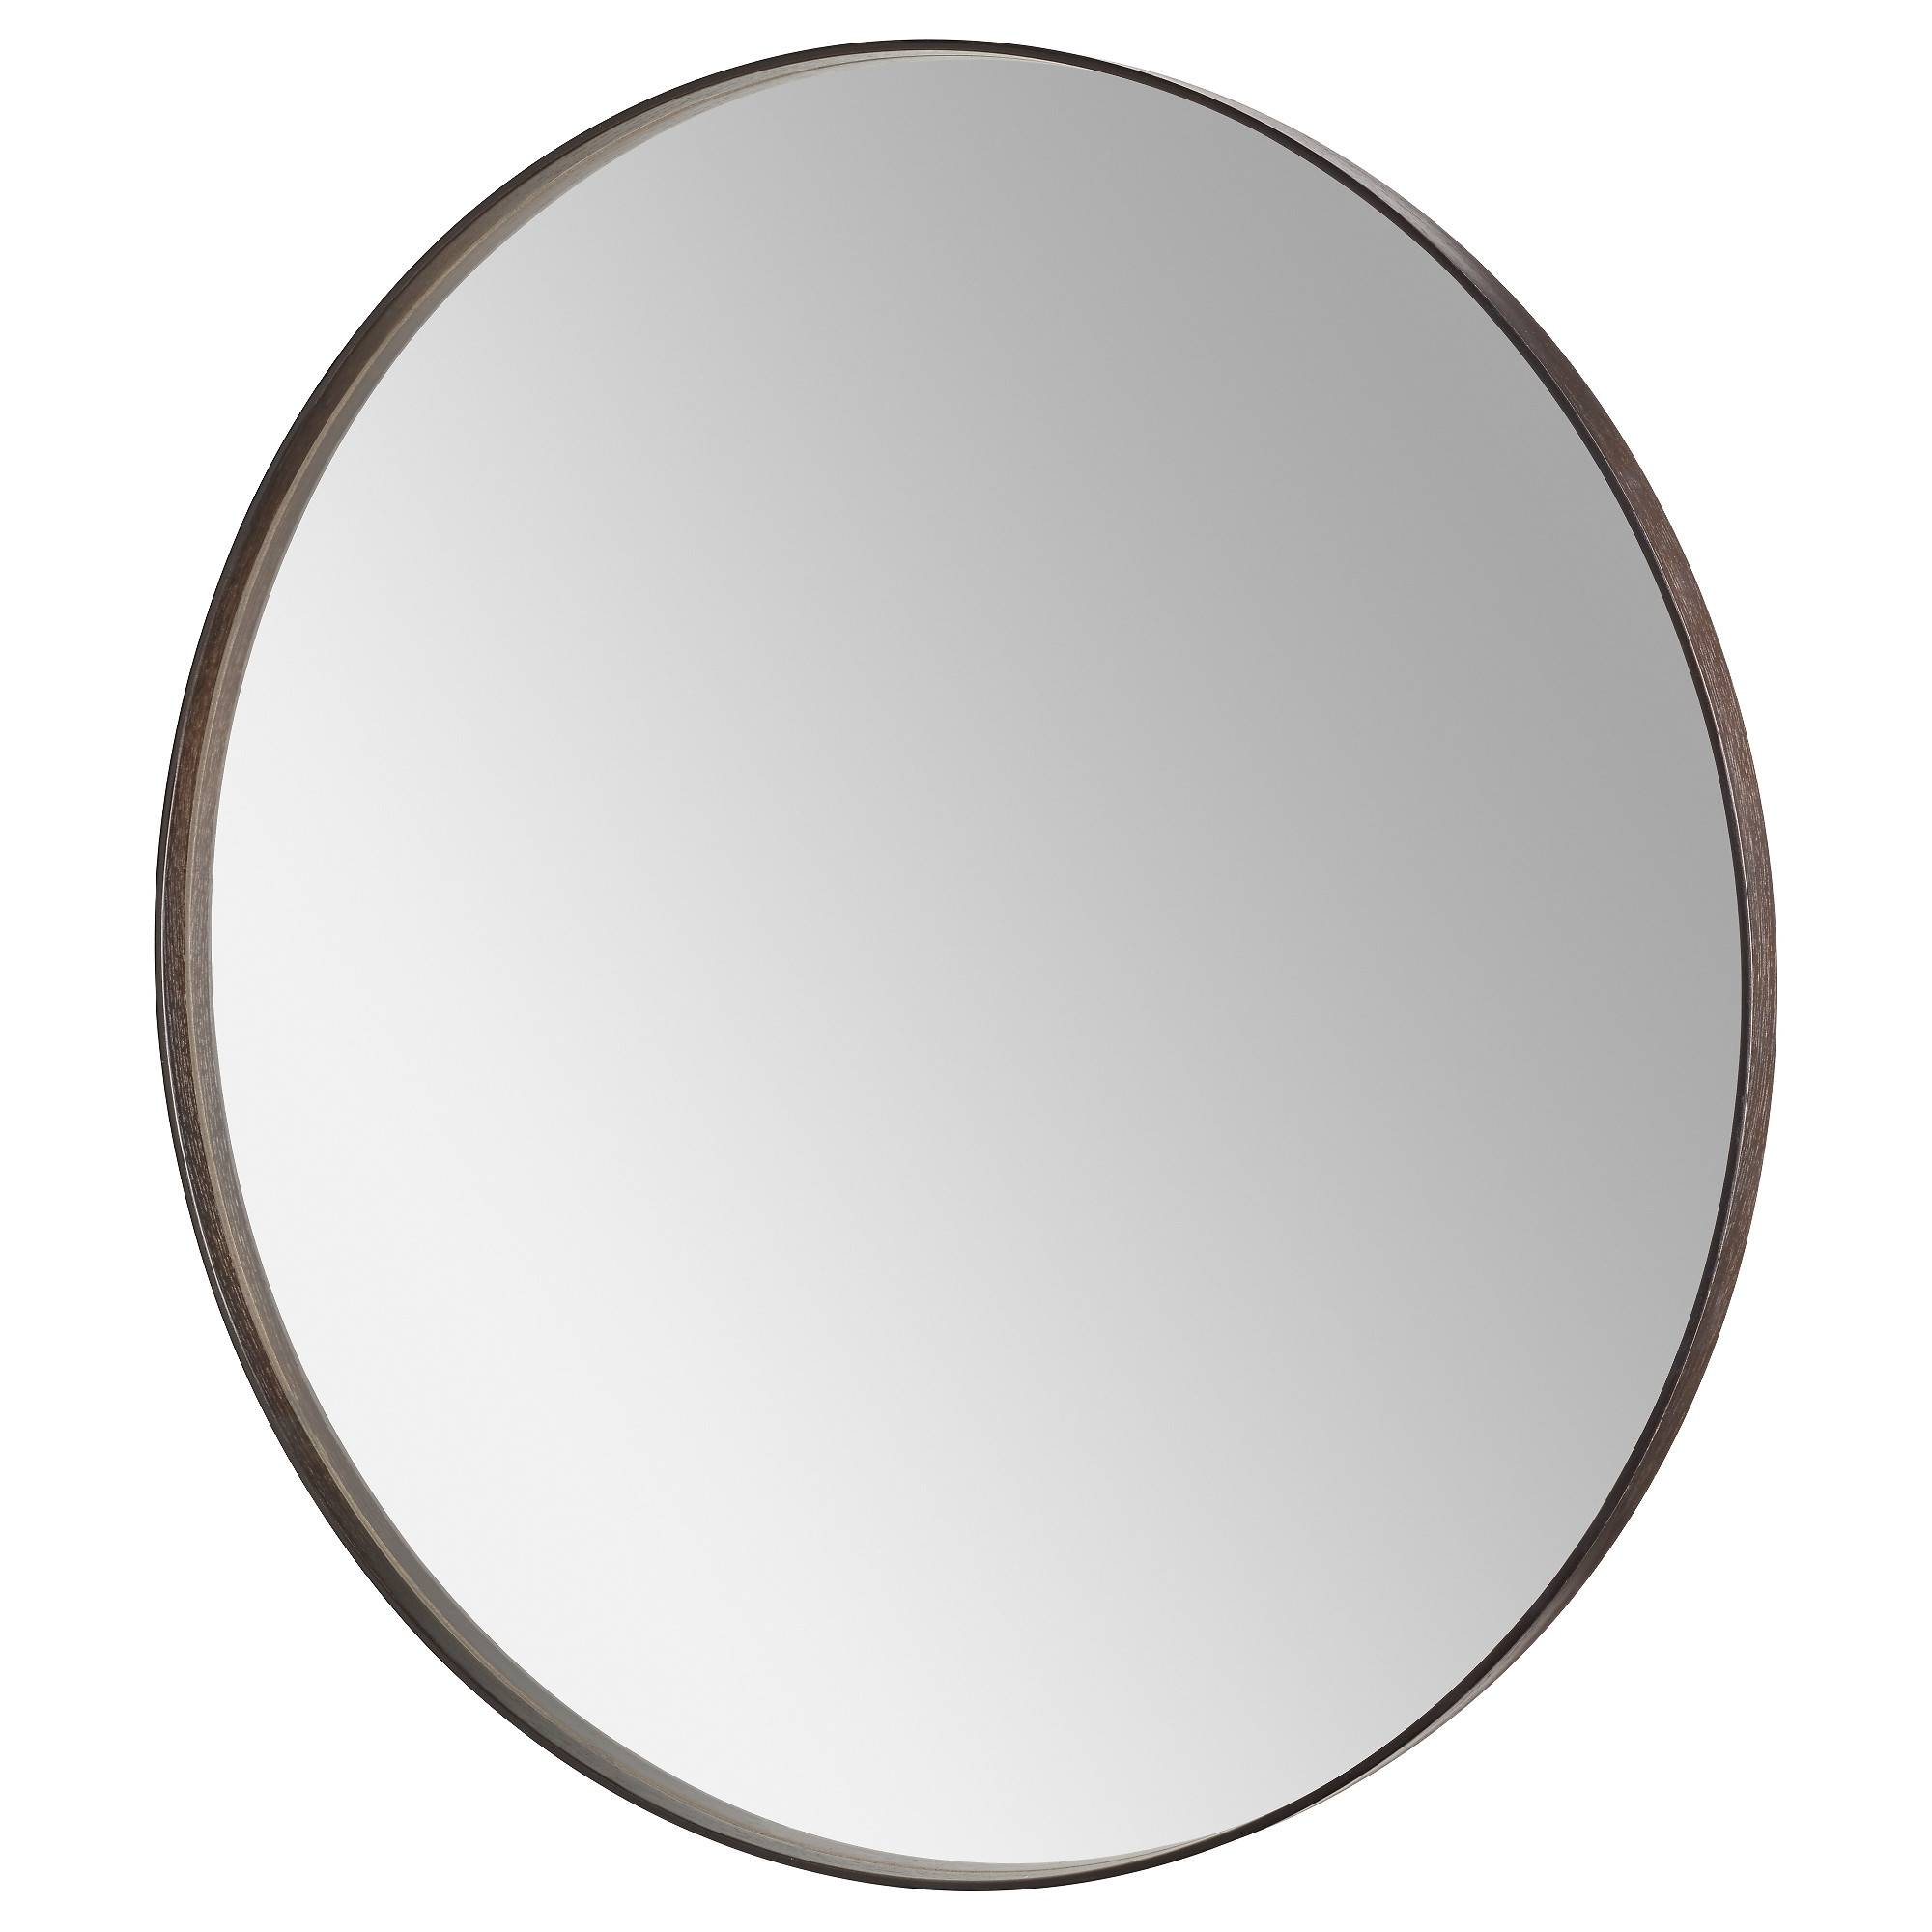 Sandane Mirror - Ikea with regard to Black Circle Mirrors (Image 22 of 25)